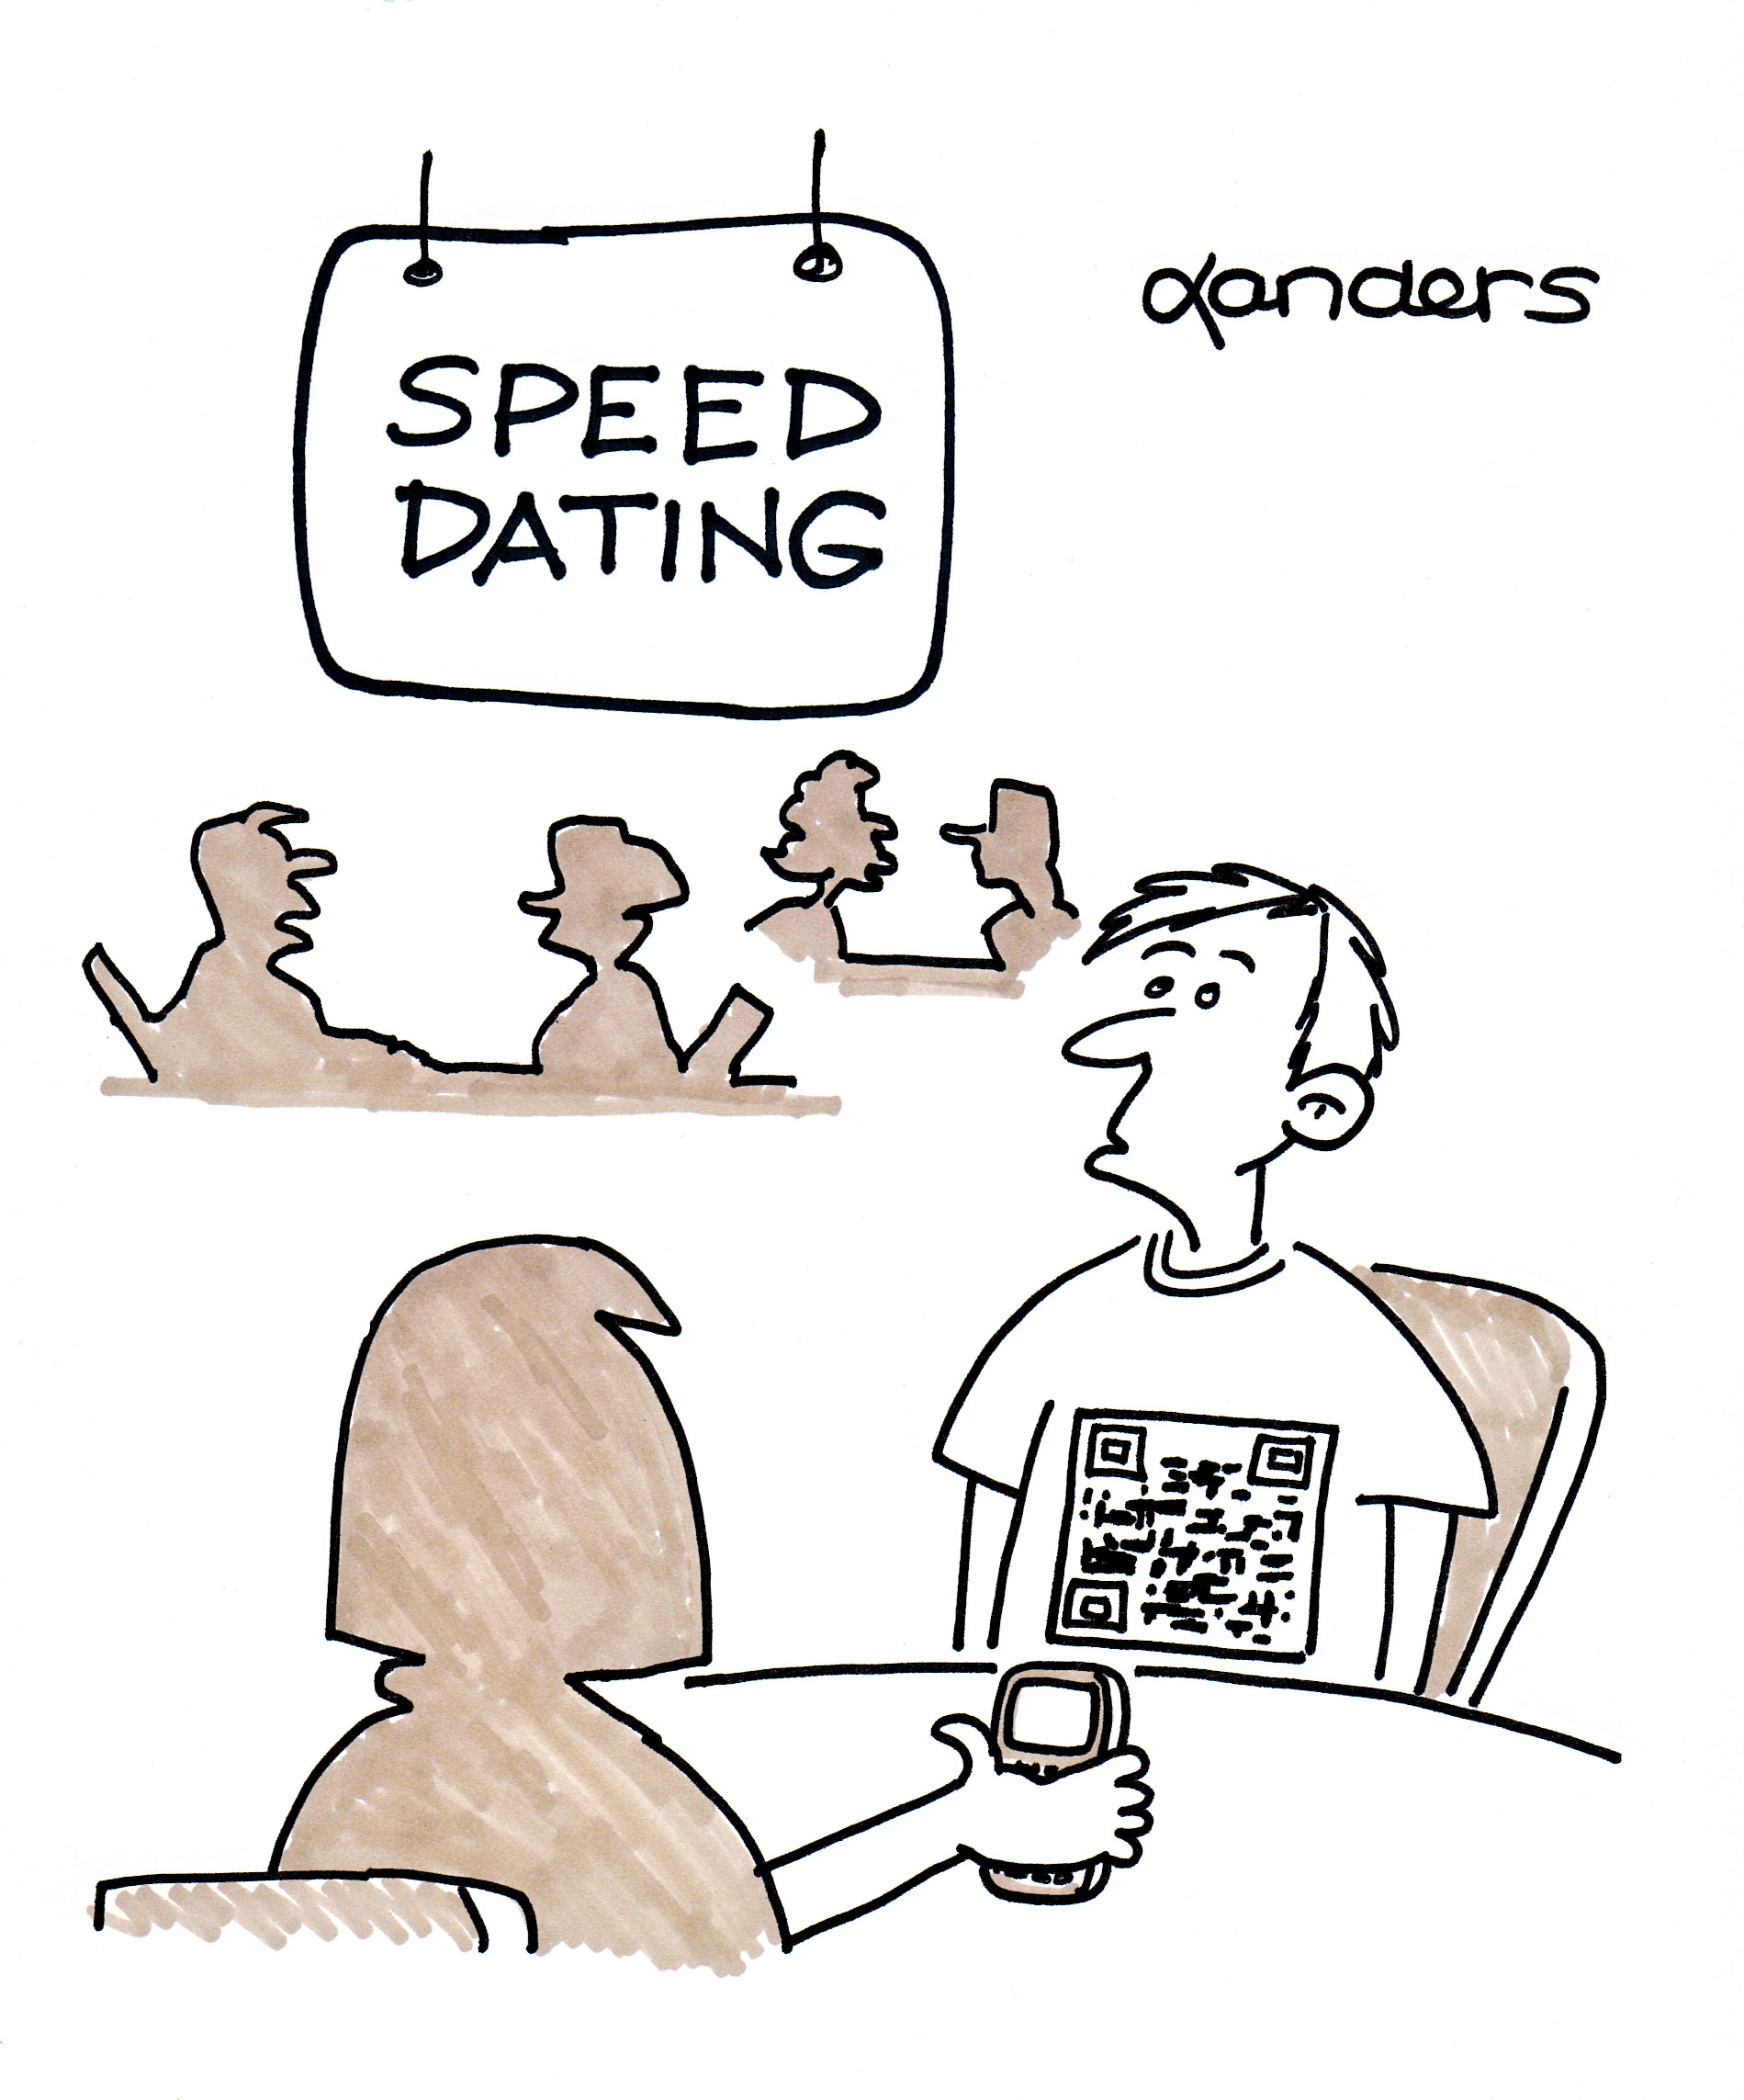 Speed dating canada reviews 3